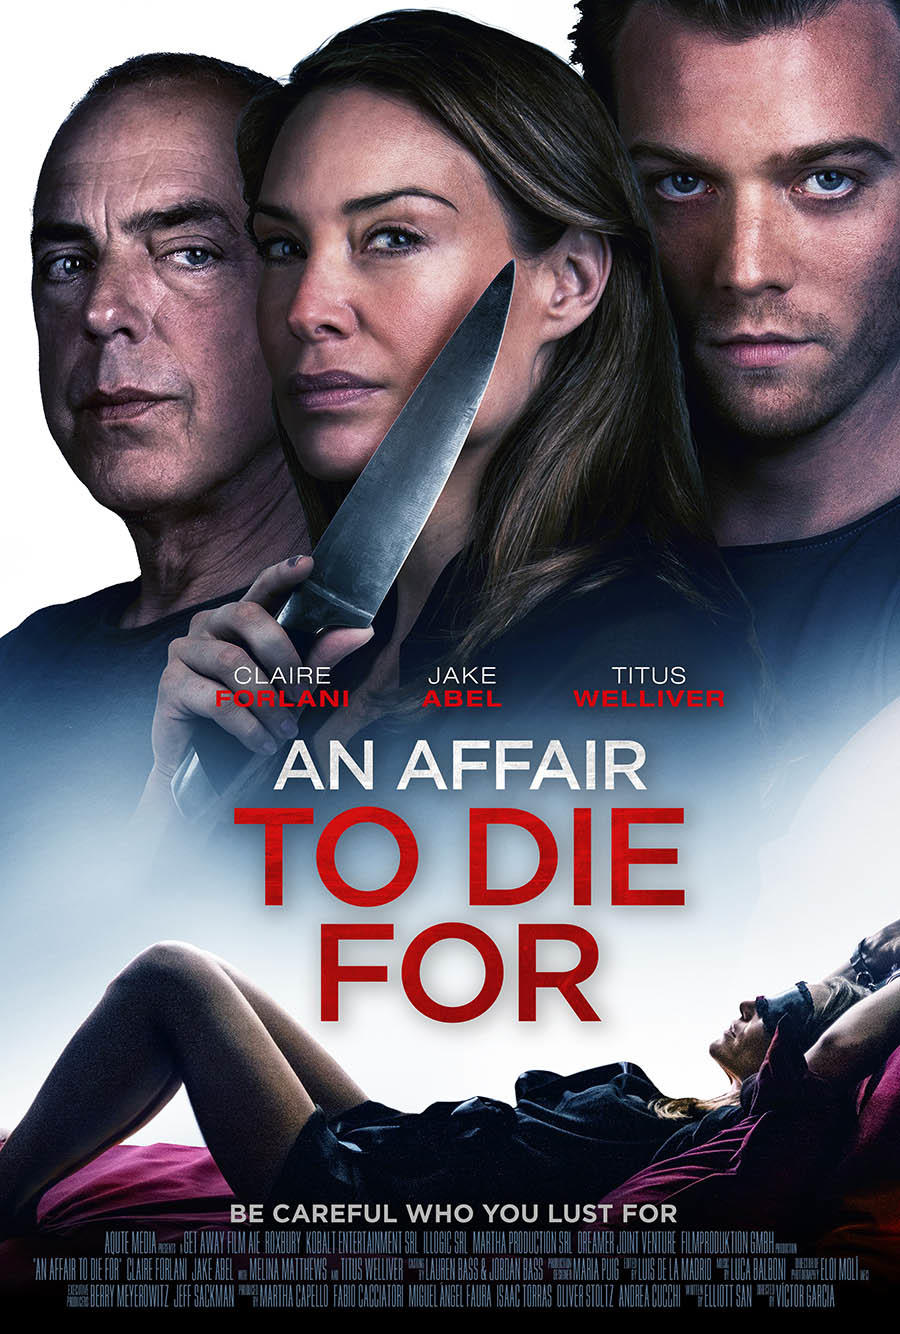 An Affair to Die For poster art